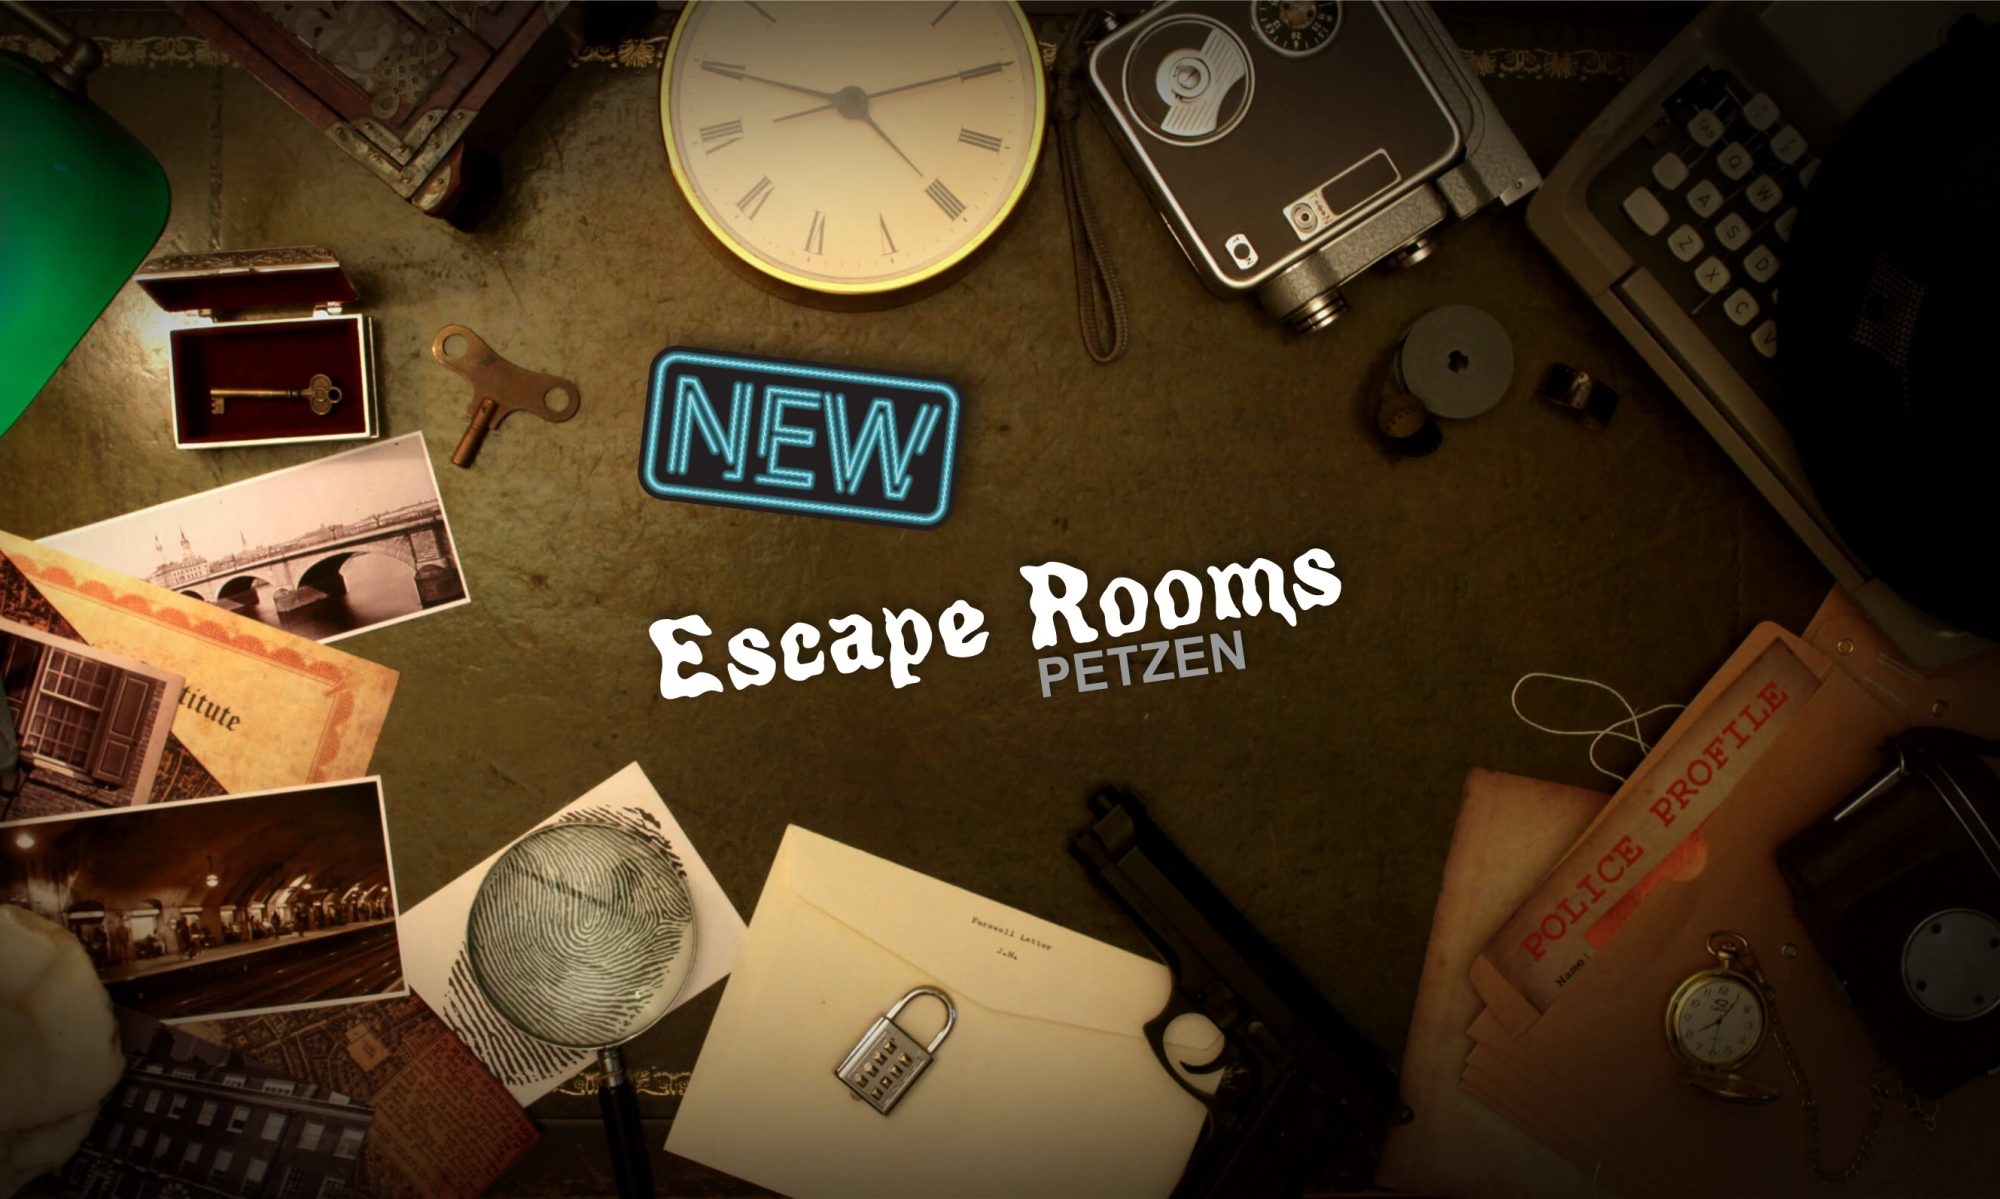 Escape ROOMS PETZEN